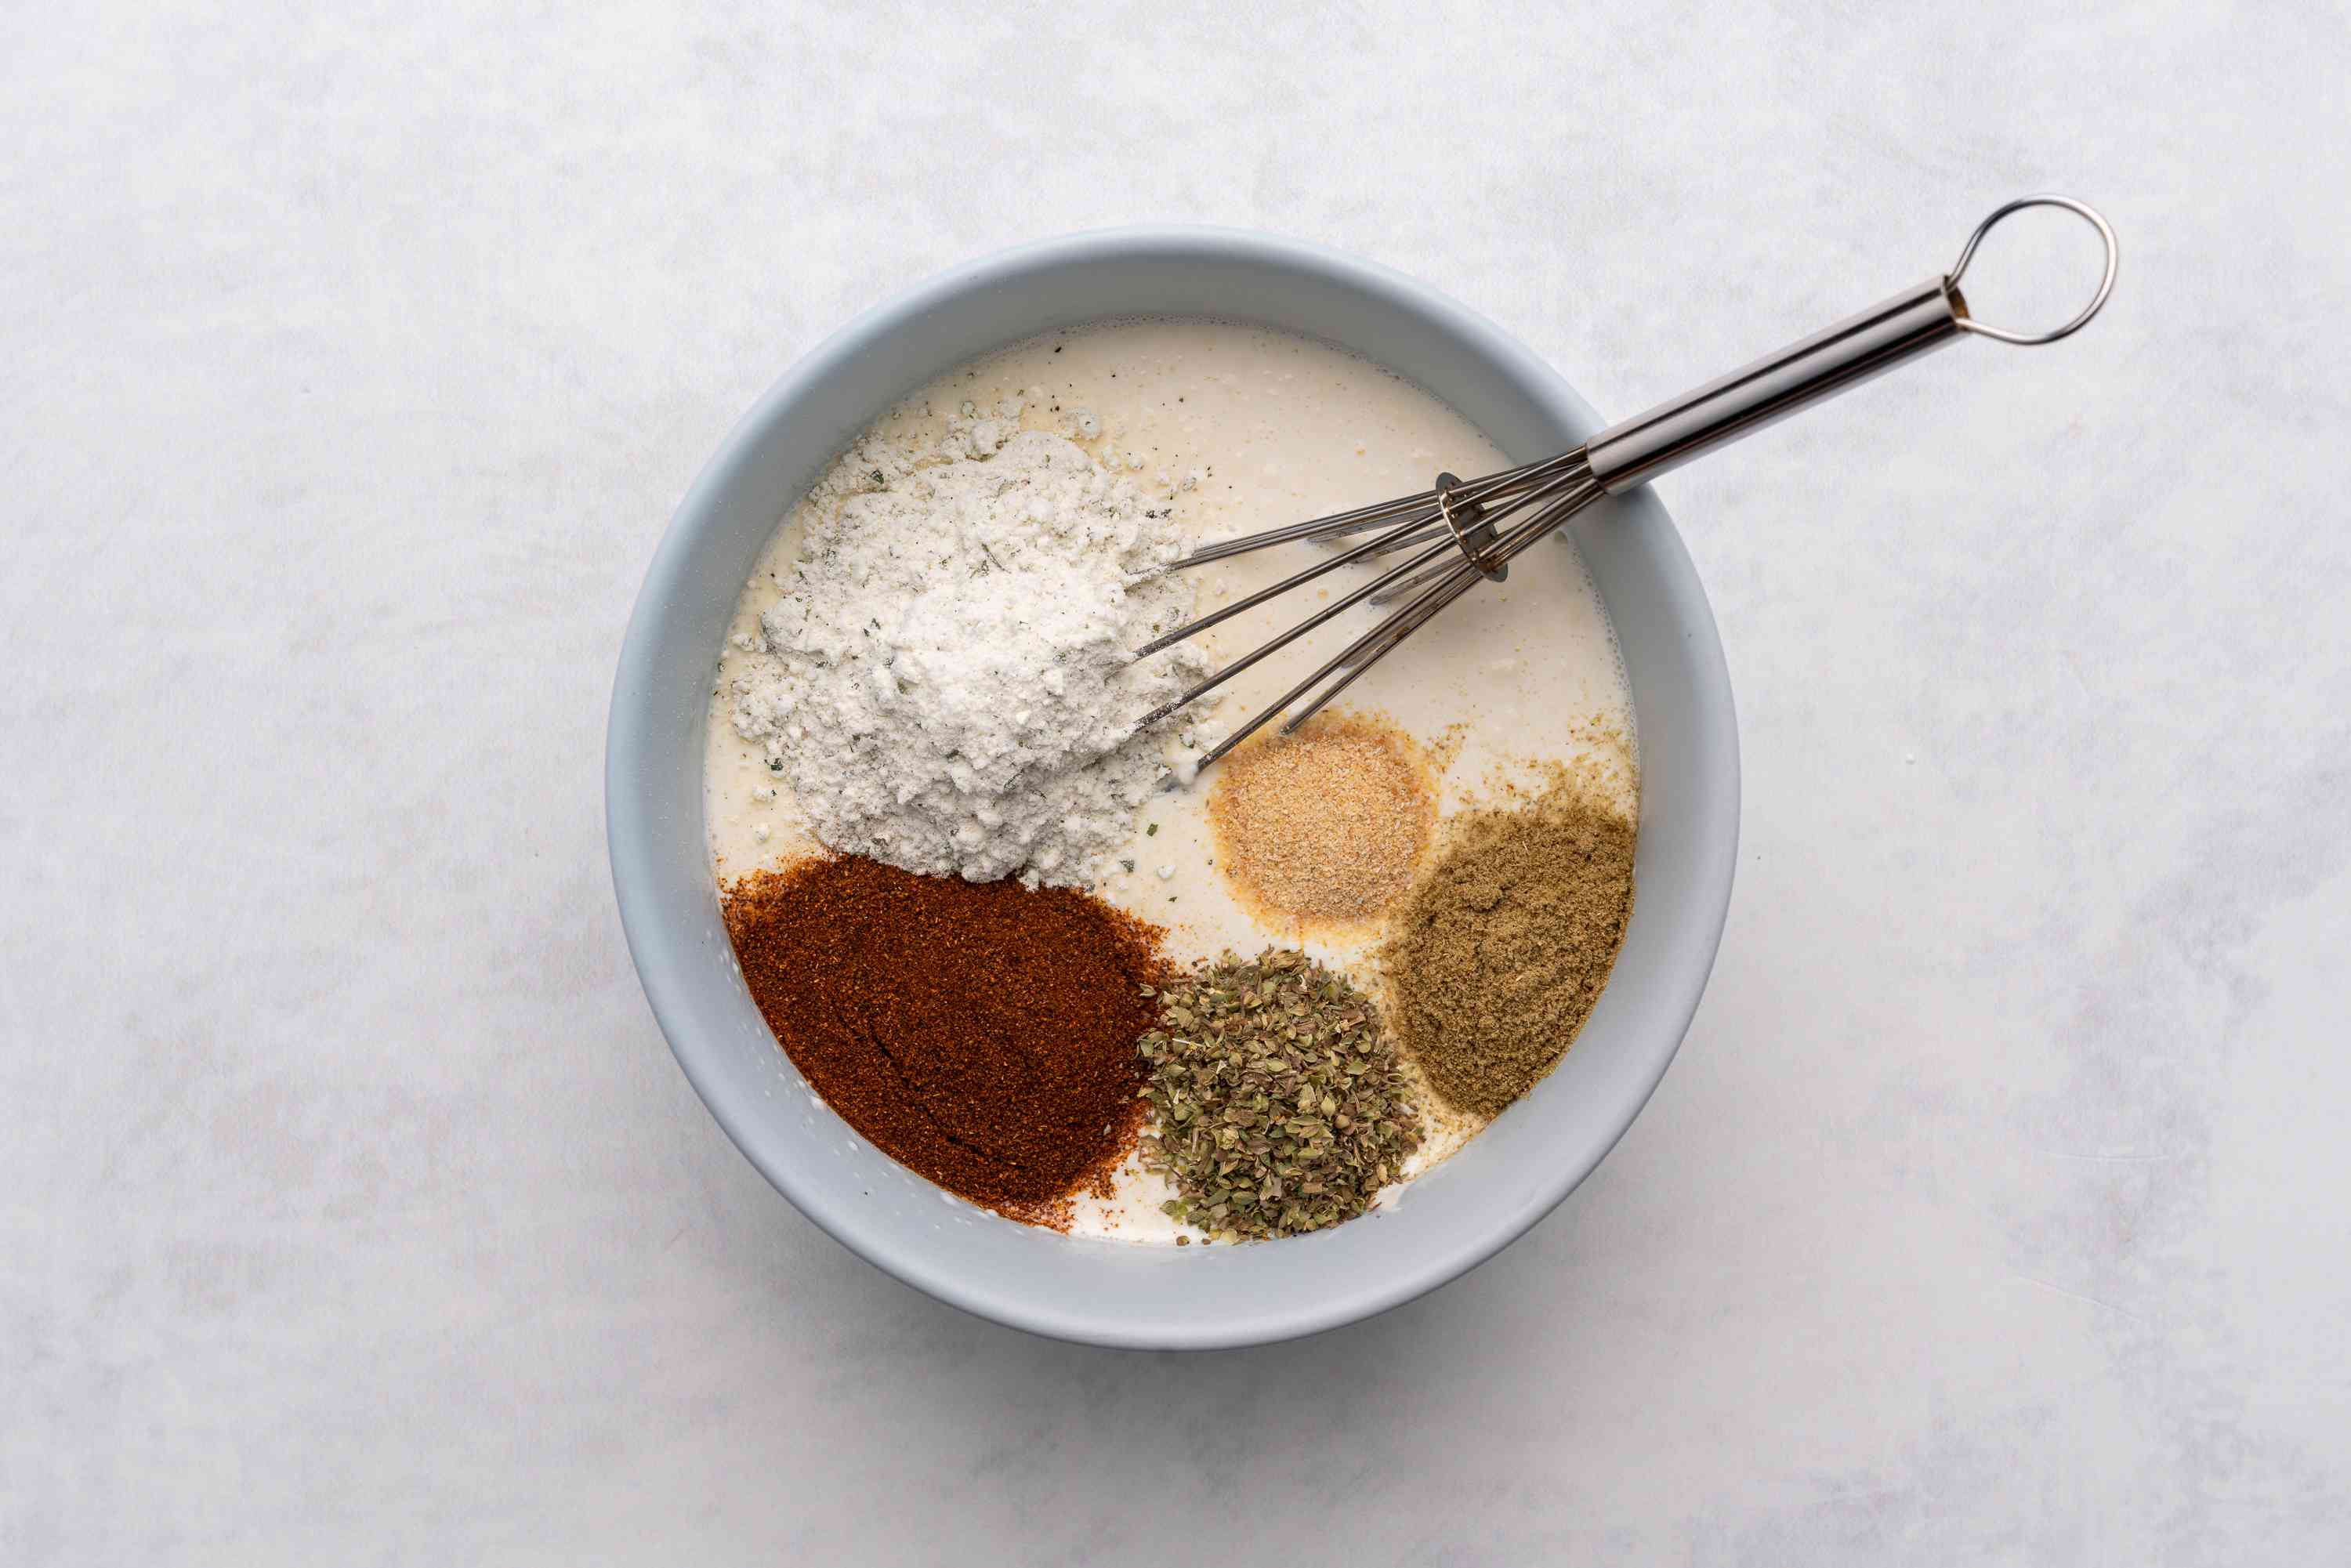 Add dry ranch dressing mix, chile powder, oregano, cumin, and garlic to the mixture in the bowl